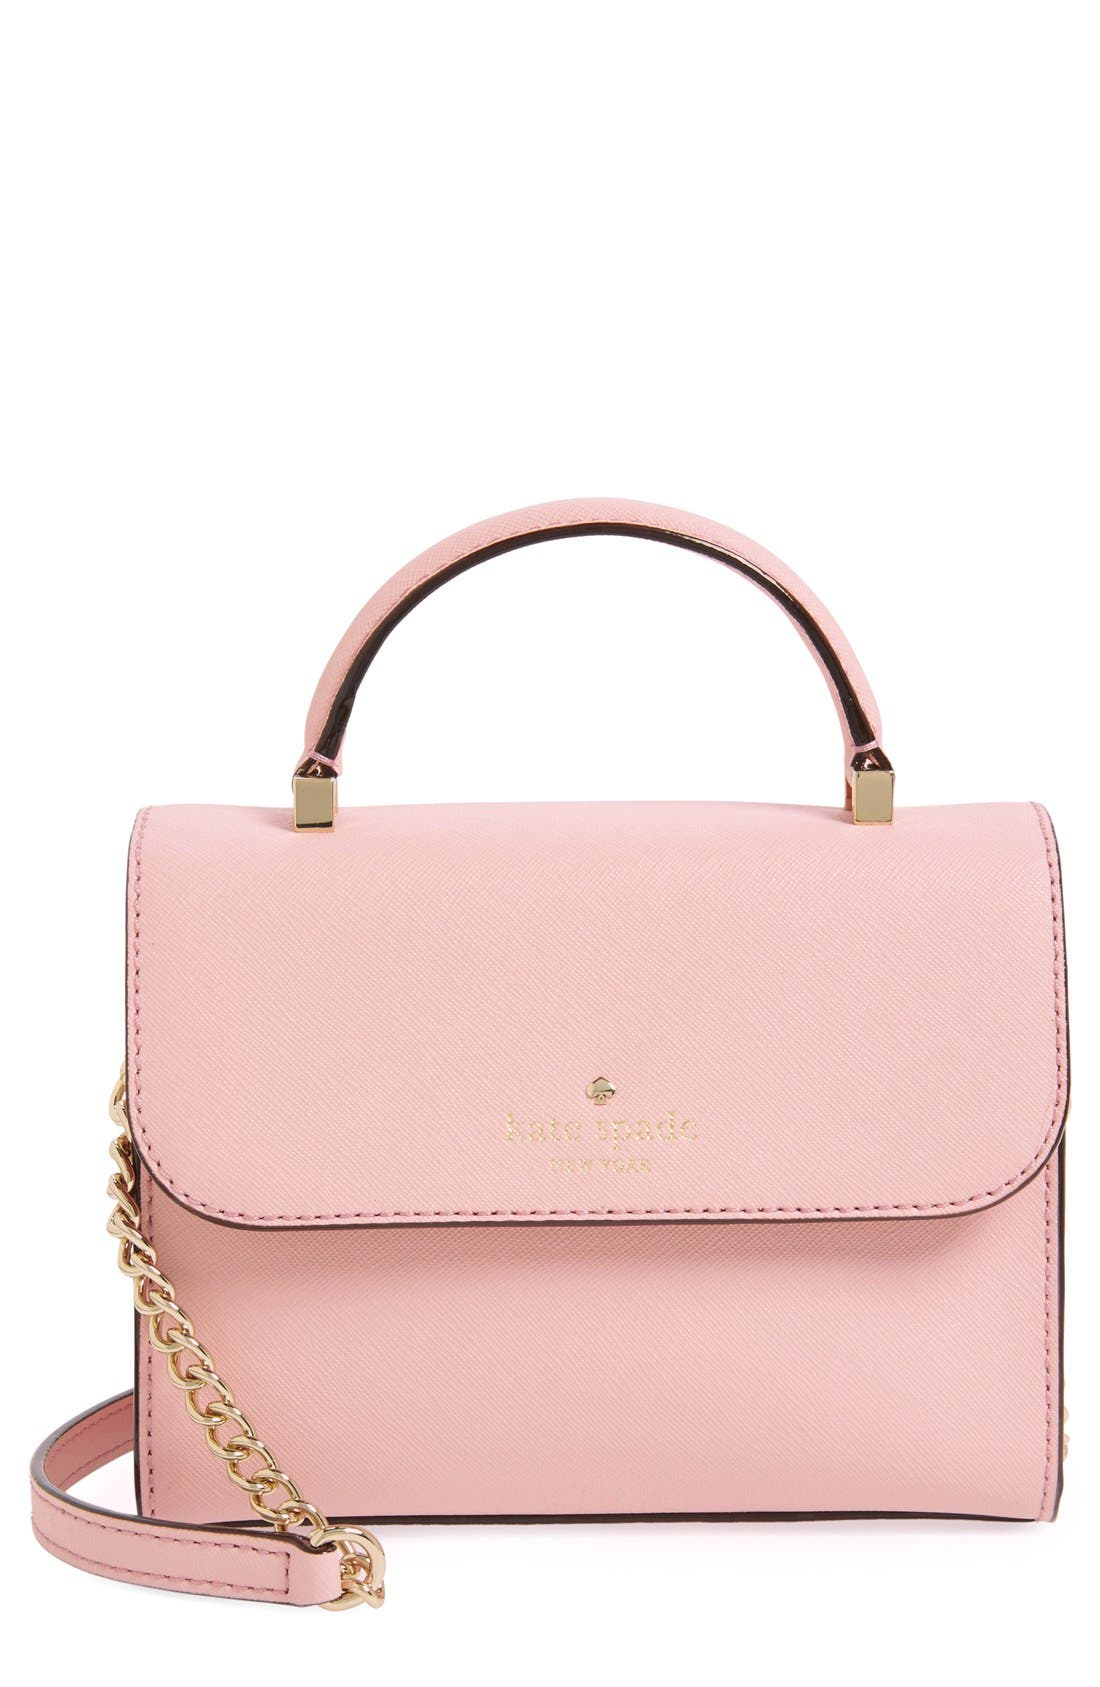 Main Image - kate spade new york 'cedar street - mini nora' crossbody bag